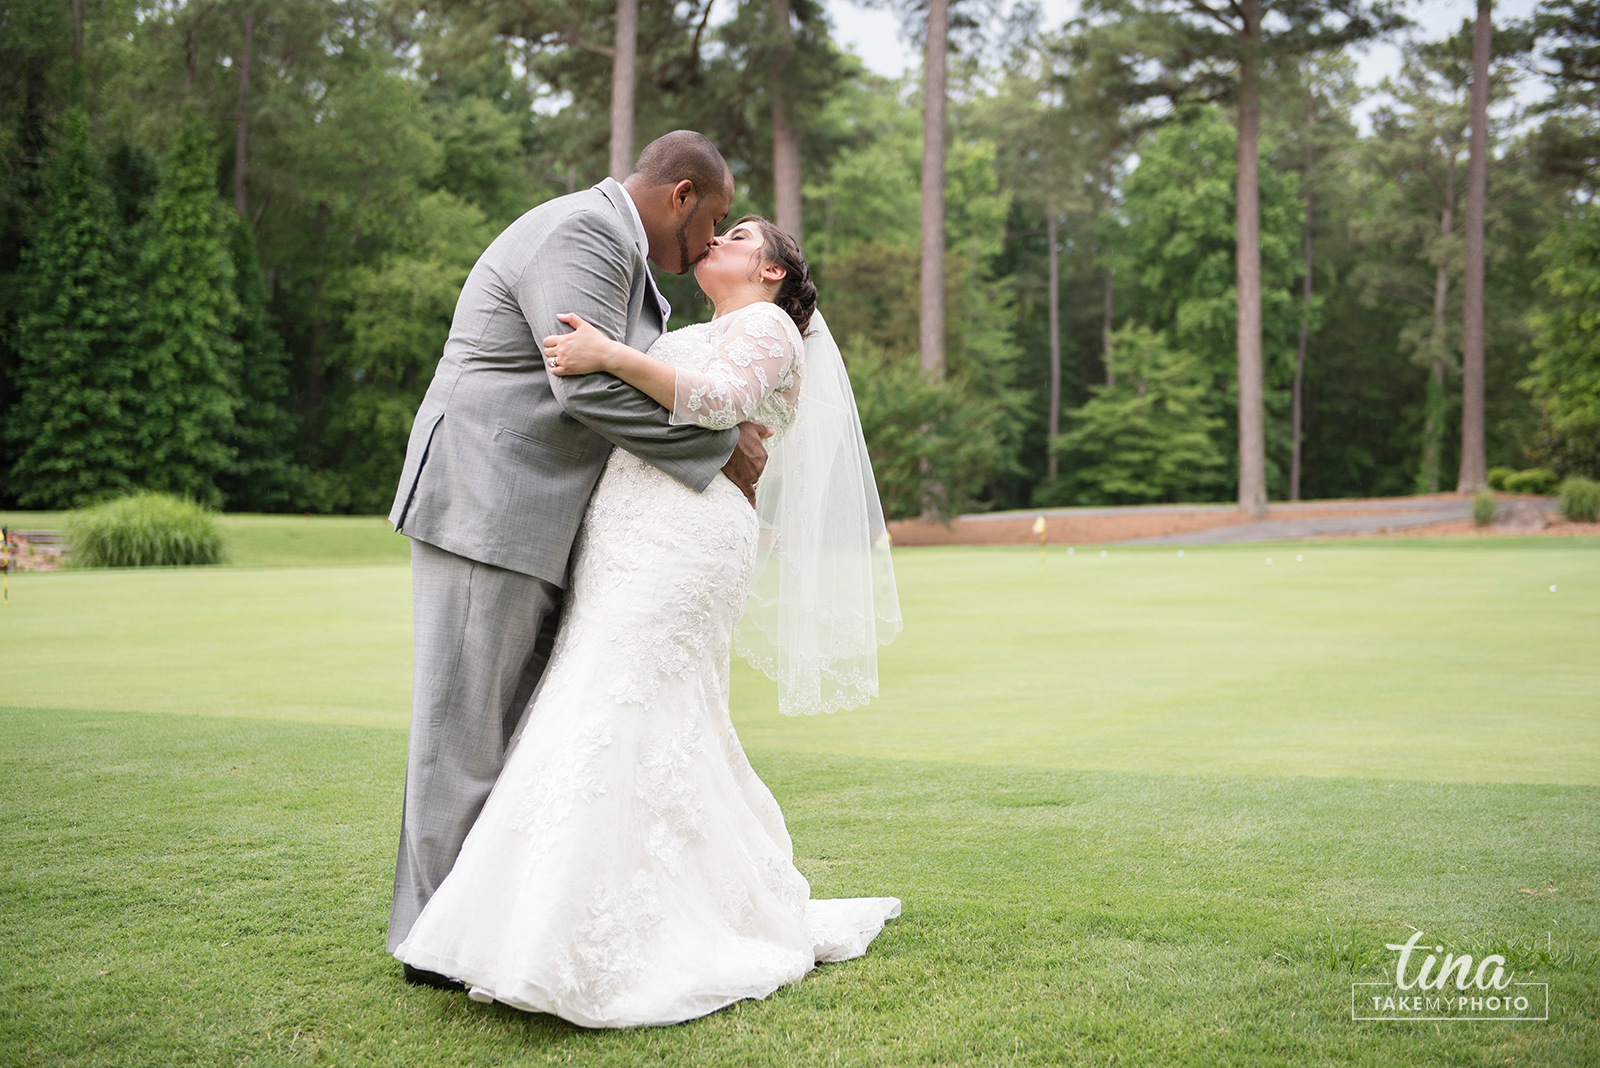 wedding-photographer-bride-groom-portrait-summer-brandermill-country-club-virginia-10-rain